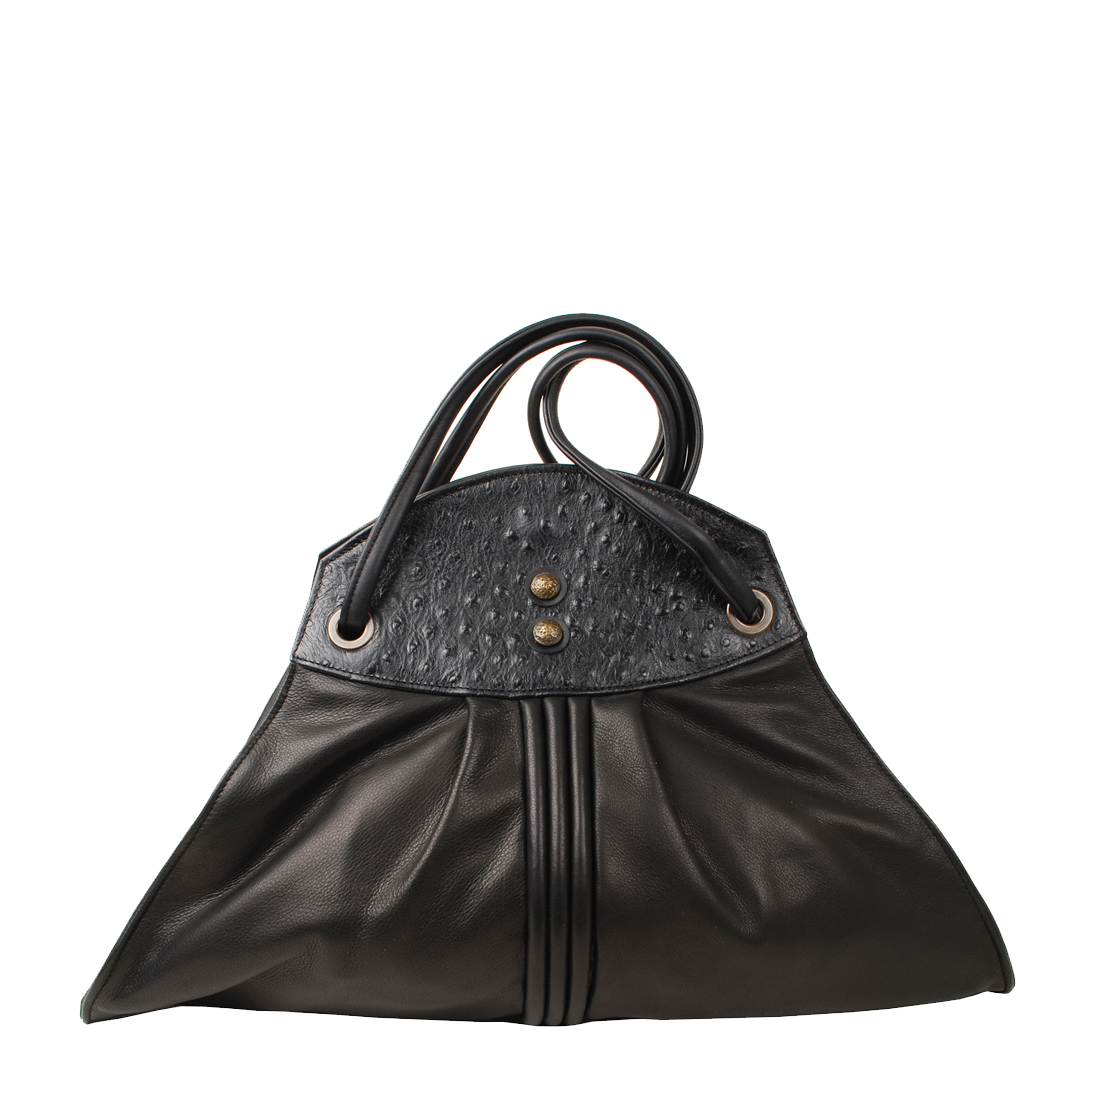 Piped A Line Black Leather Shoudler Bag